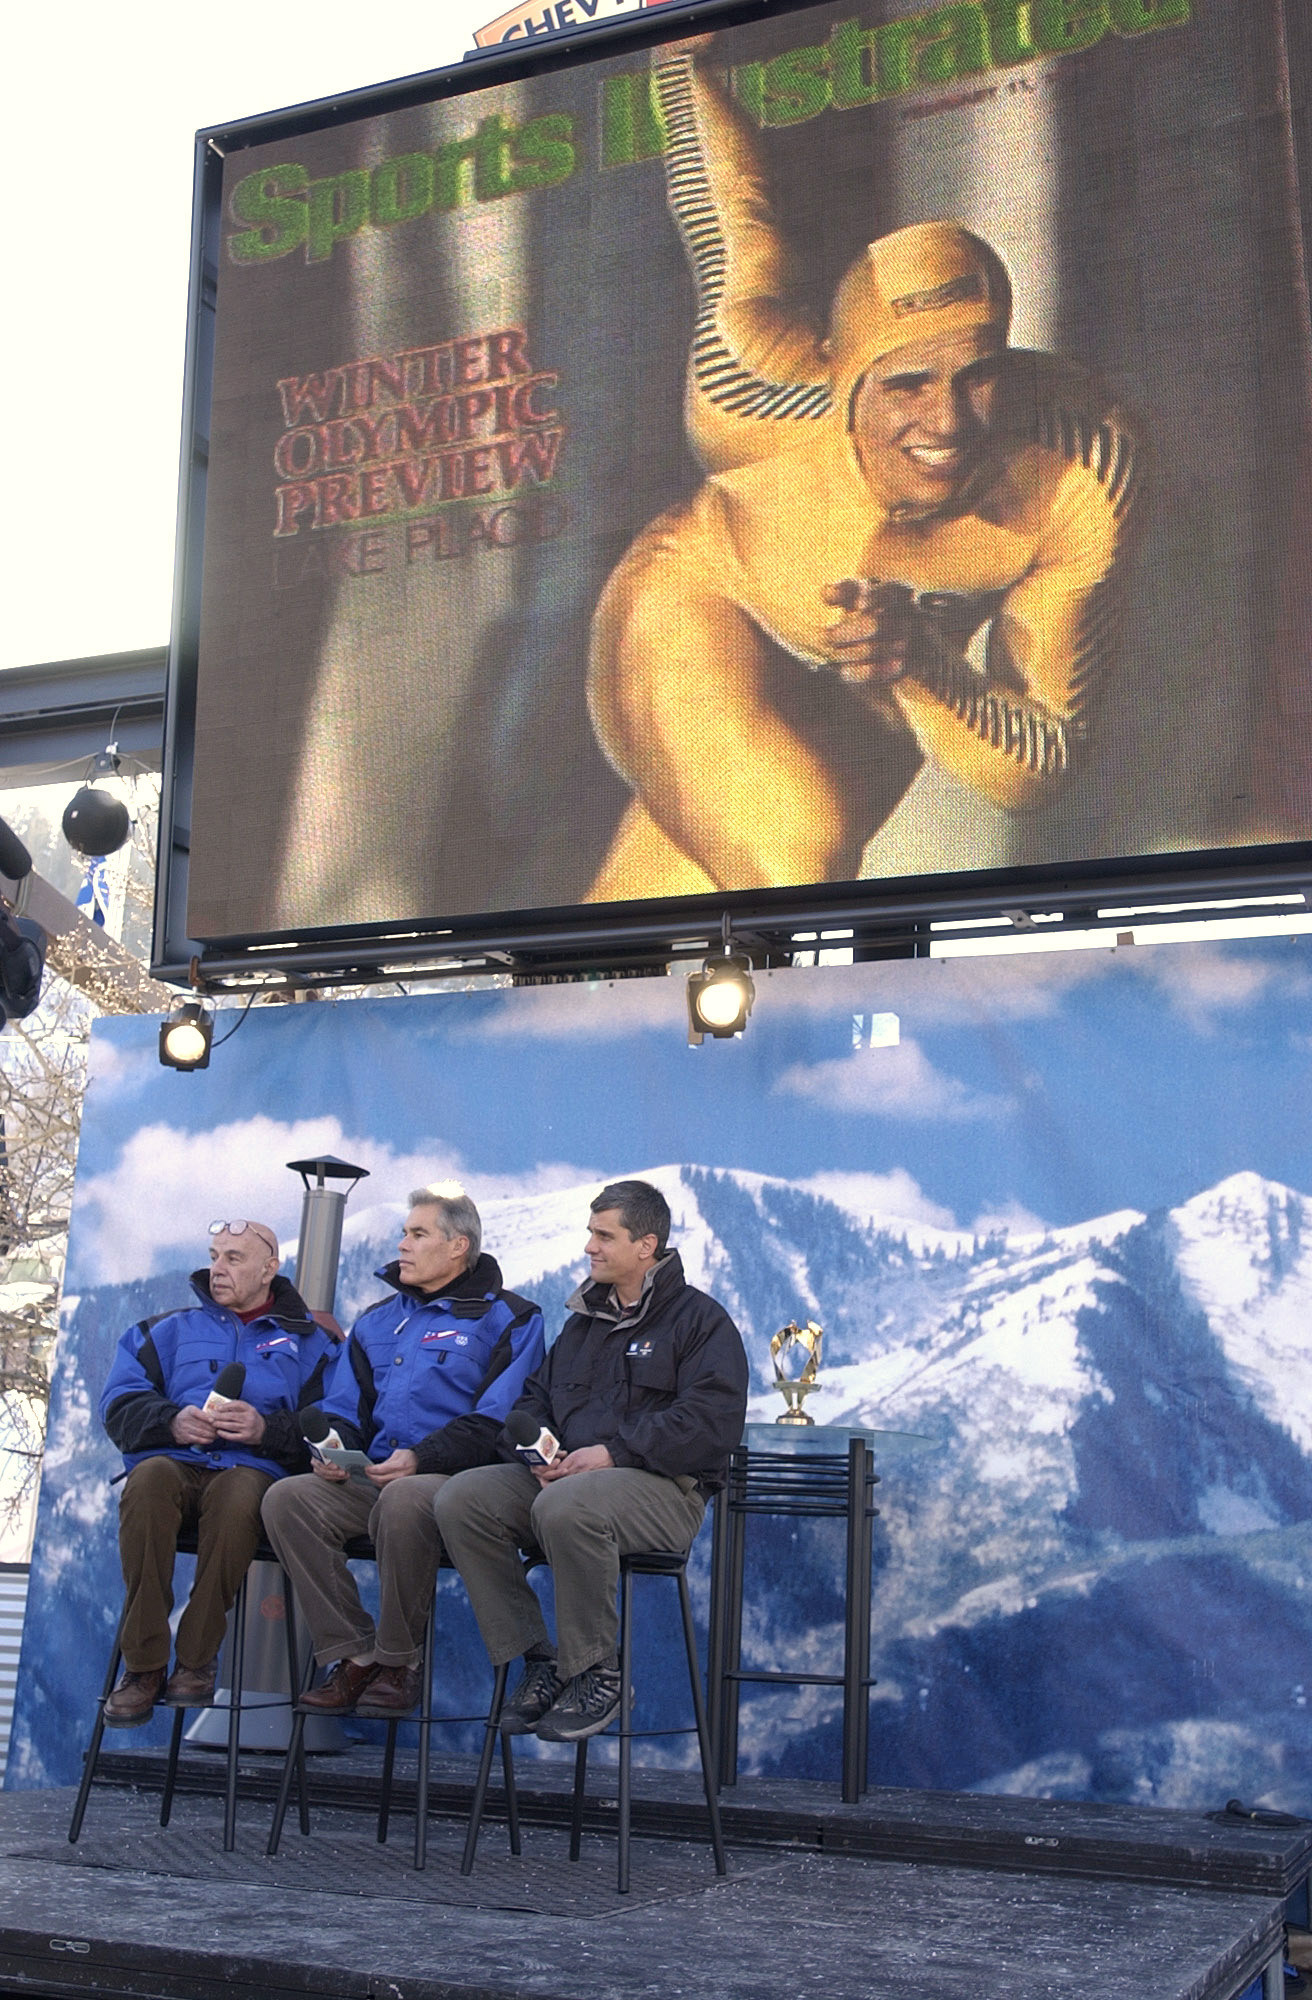 Heiden, right, was honoured at the Salt Lake City 2002 Games by film-maker Bud Greenspan, left, as one of the 10 greatest Winter Olympians of all time ©Getty Images